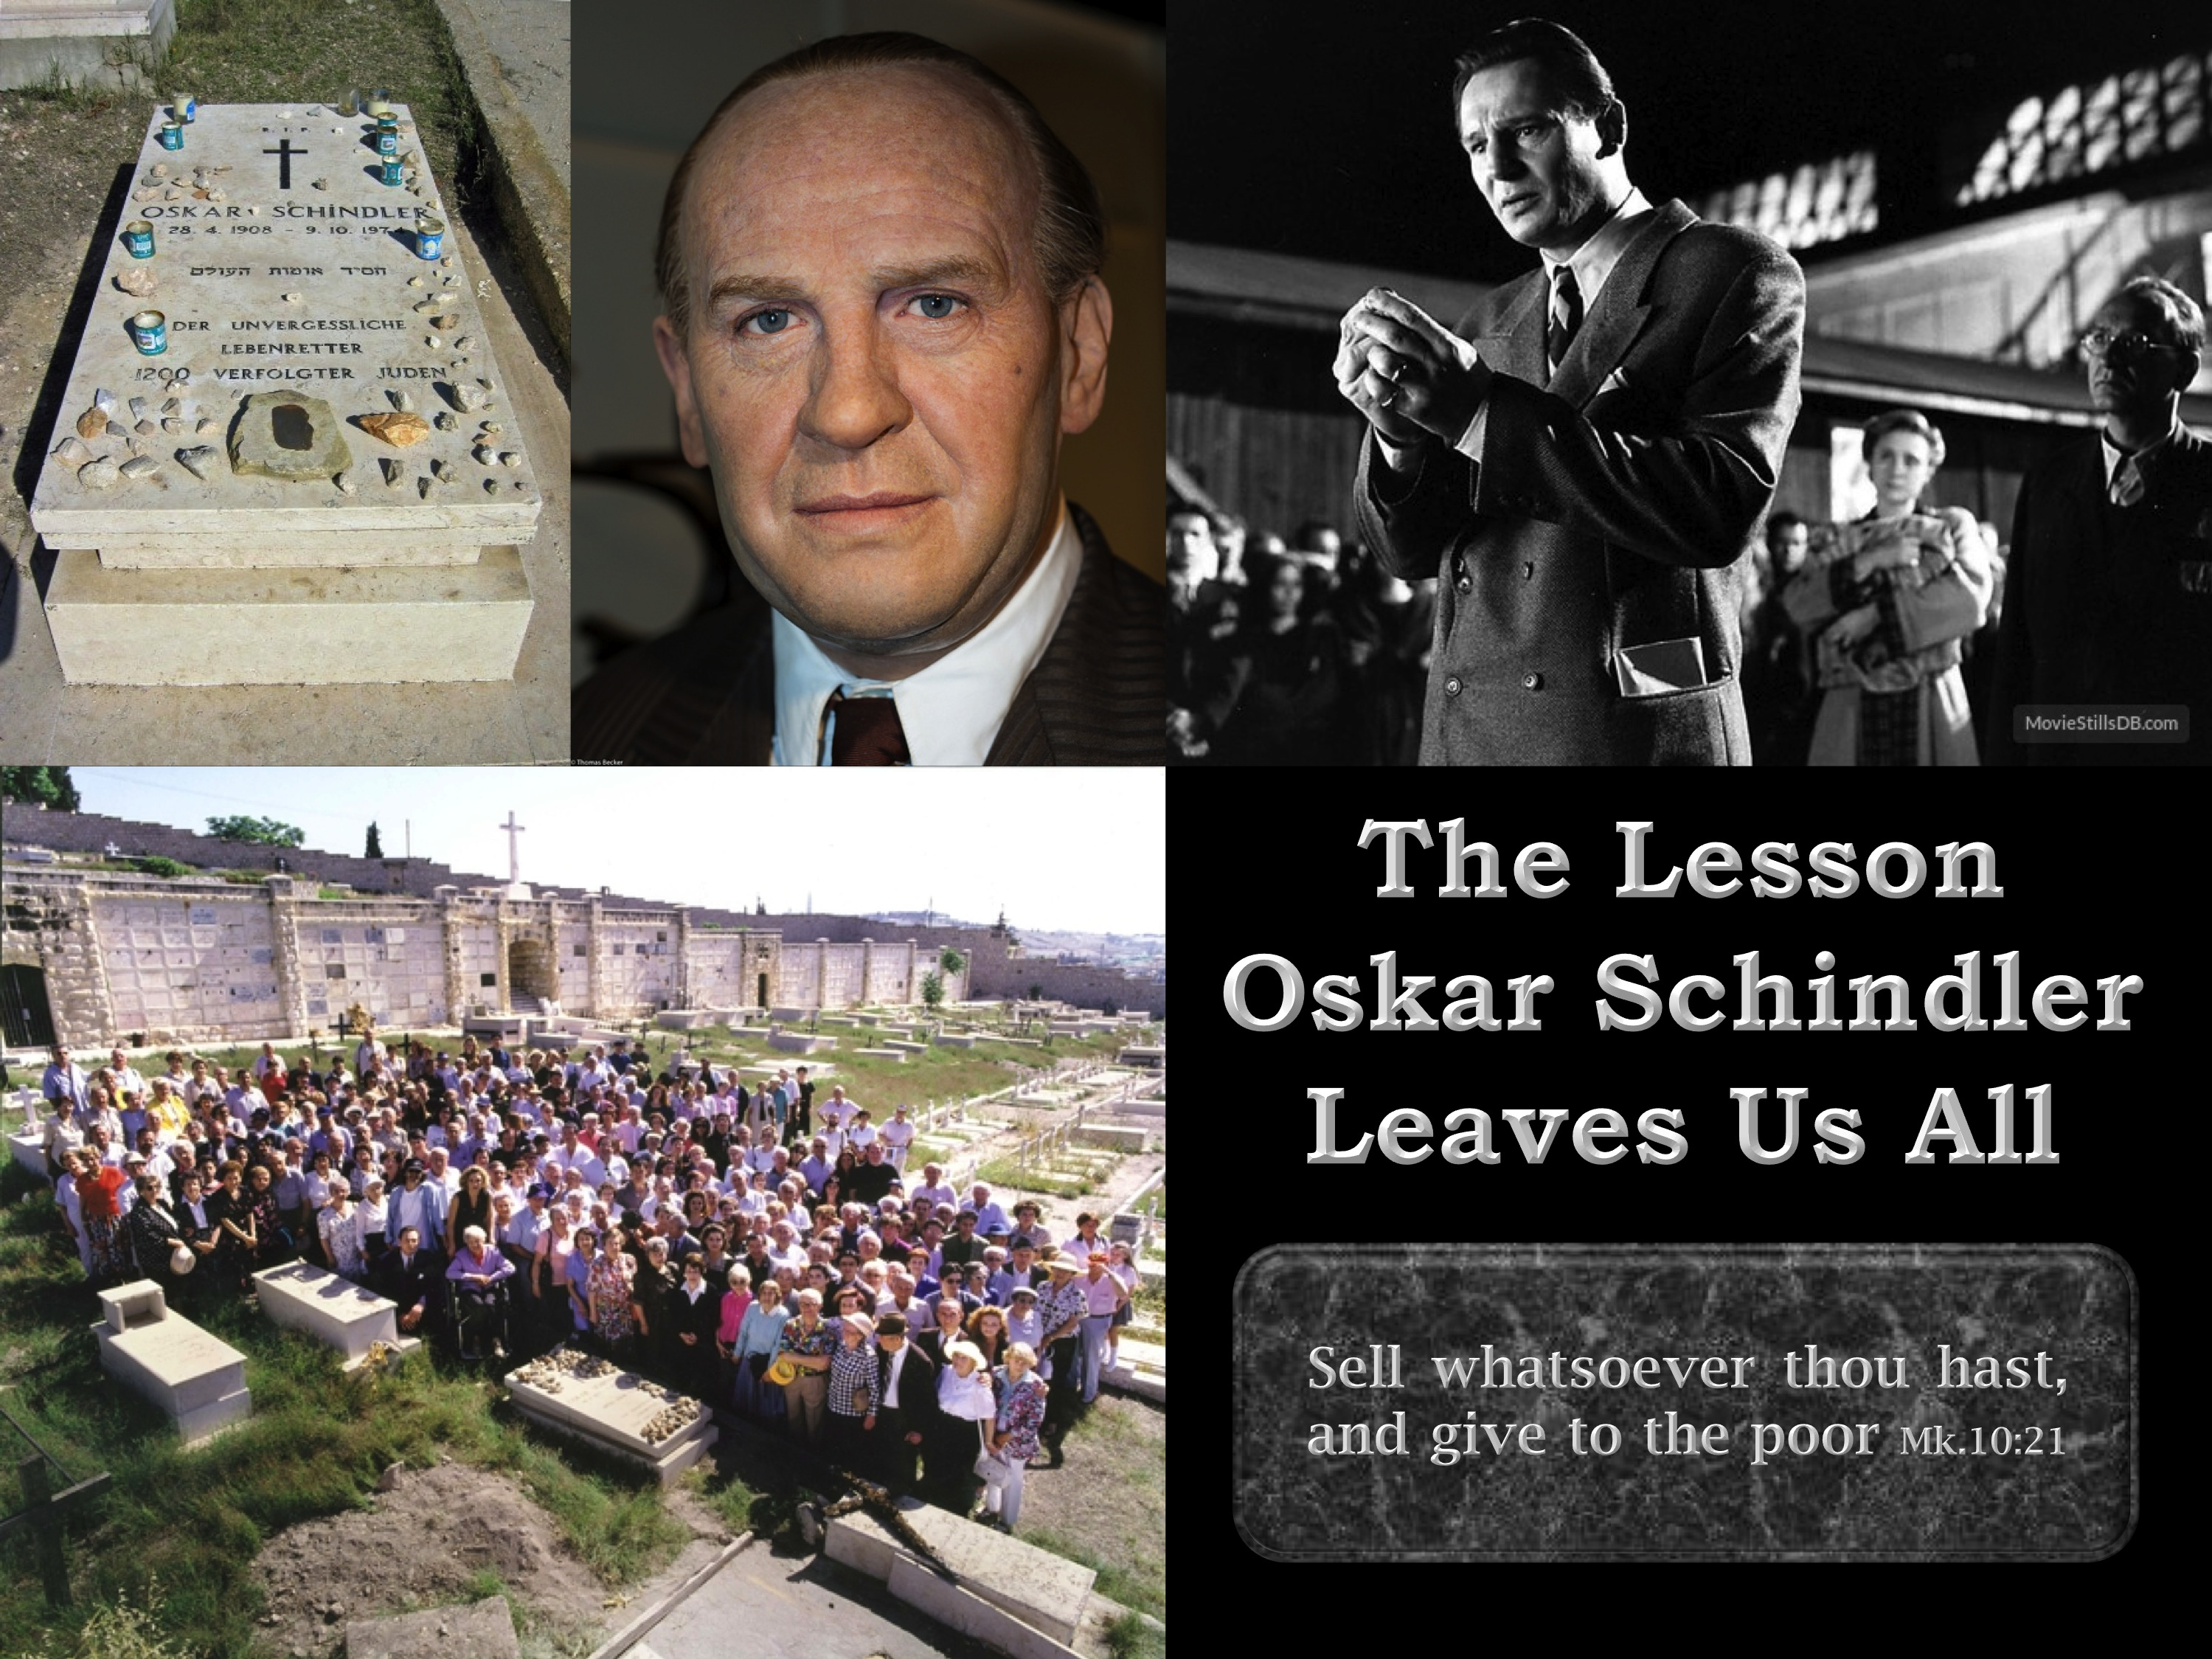 an introduction to the life of oskar schindler Schindler's list, the movie based on the nonfiction novel based on the life of the german businessman who saved scores of jews from the holocaust, has become a beginning study text for individuals and school, college, and independent learning classes alike this is a casebook to aid such study.